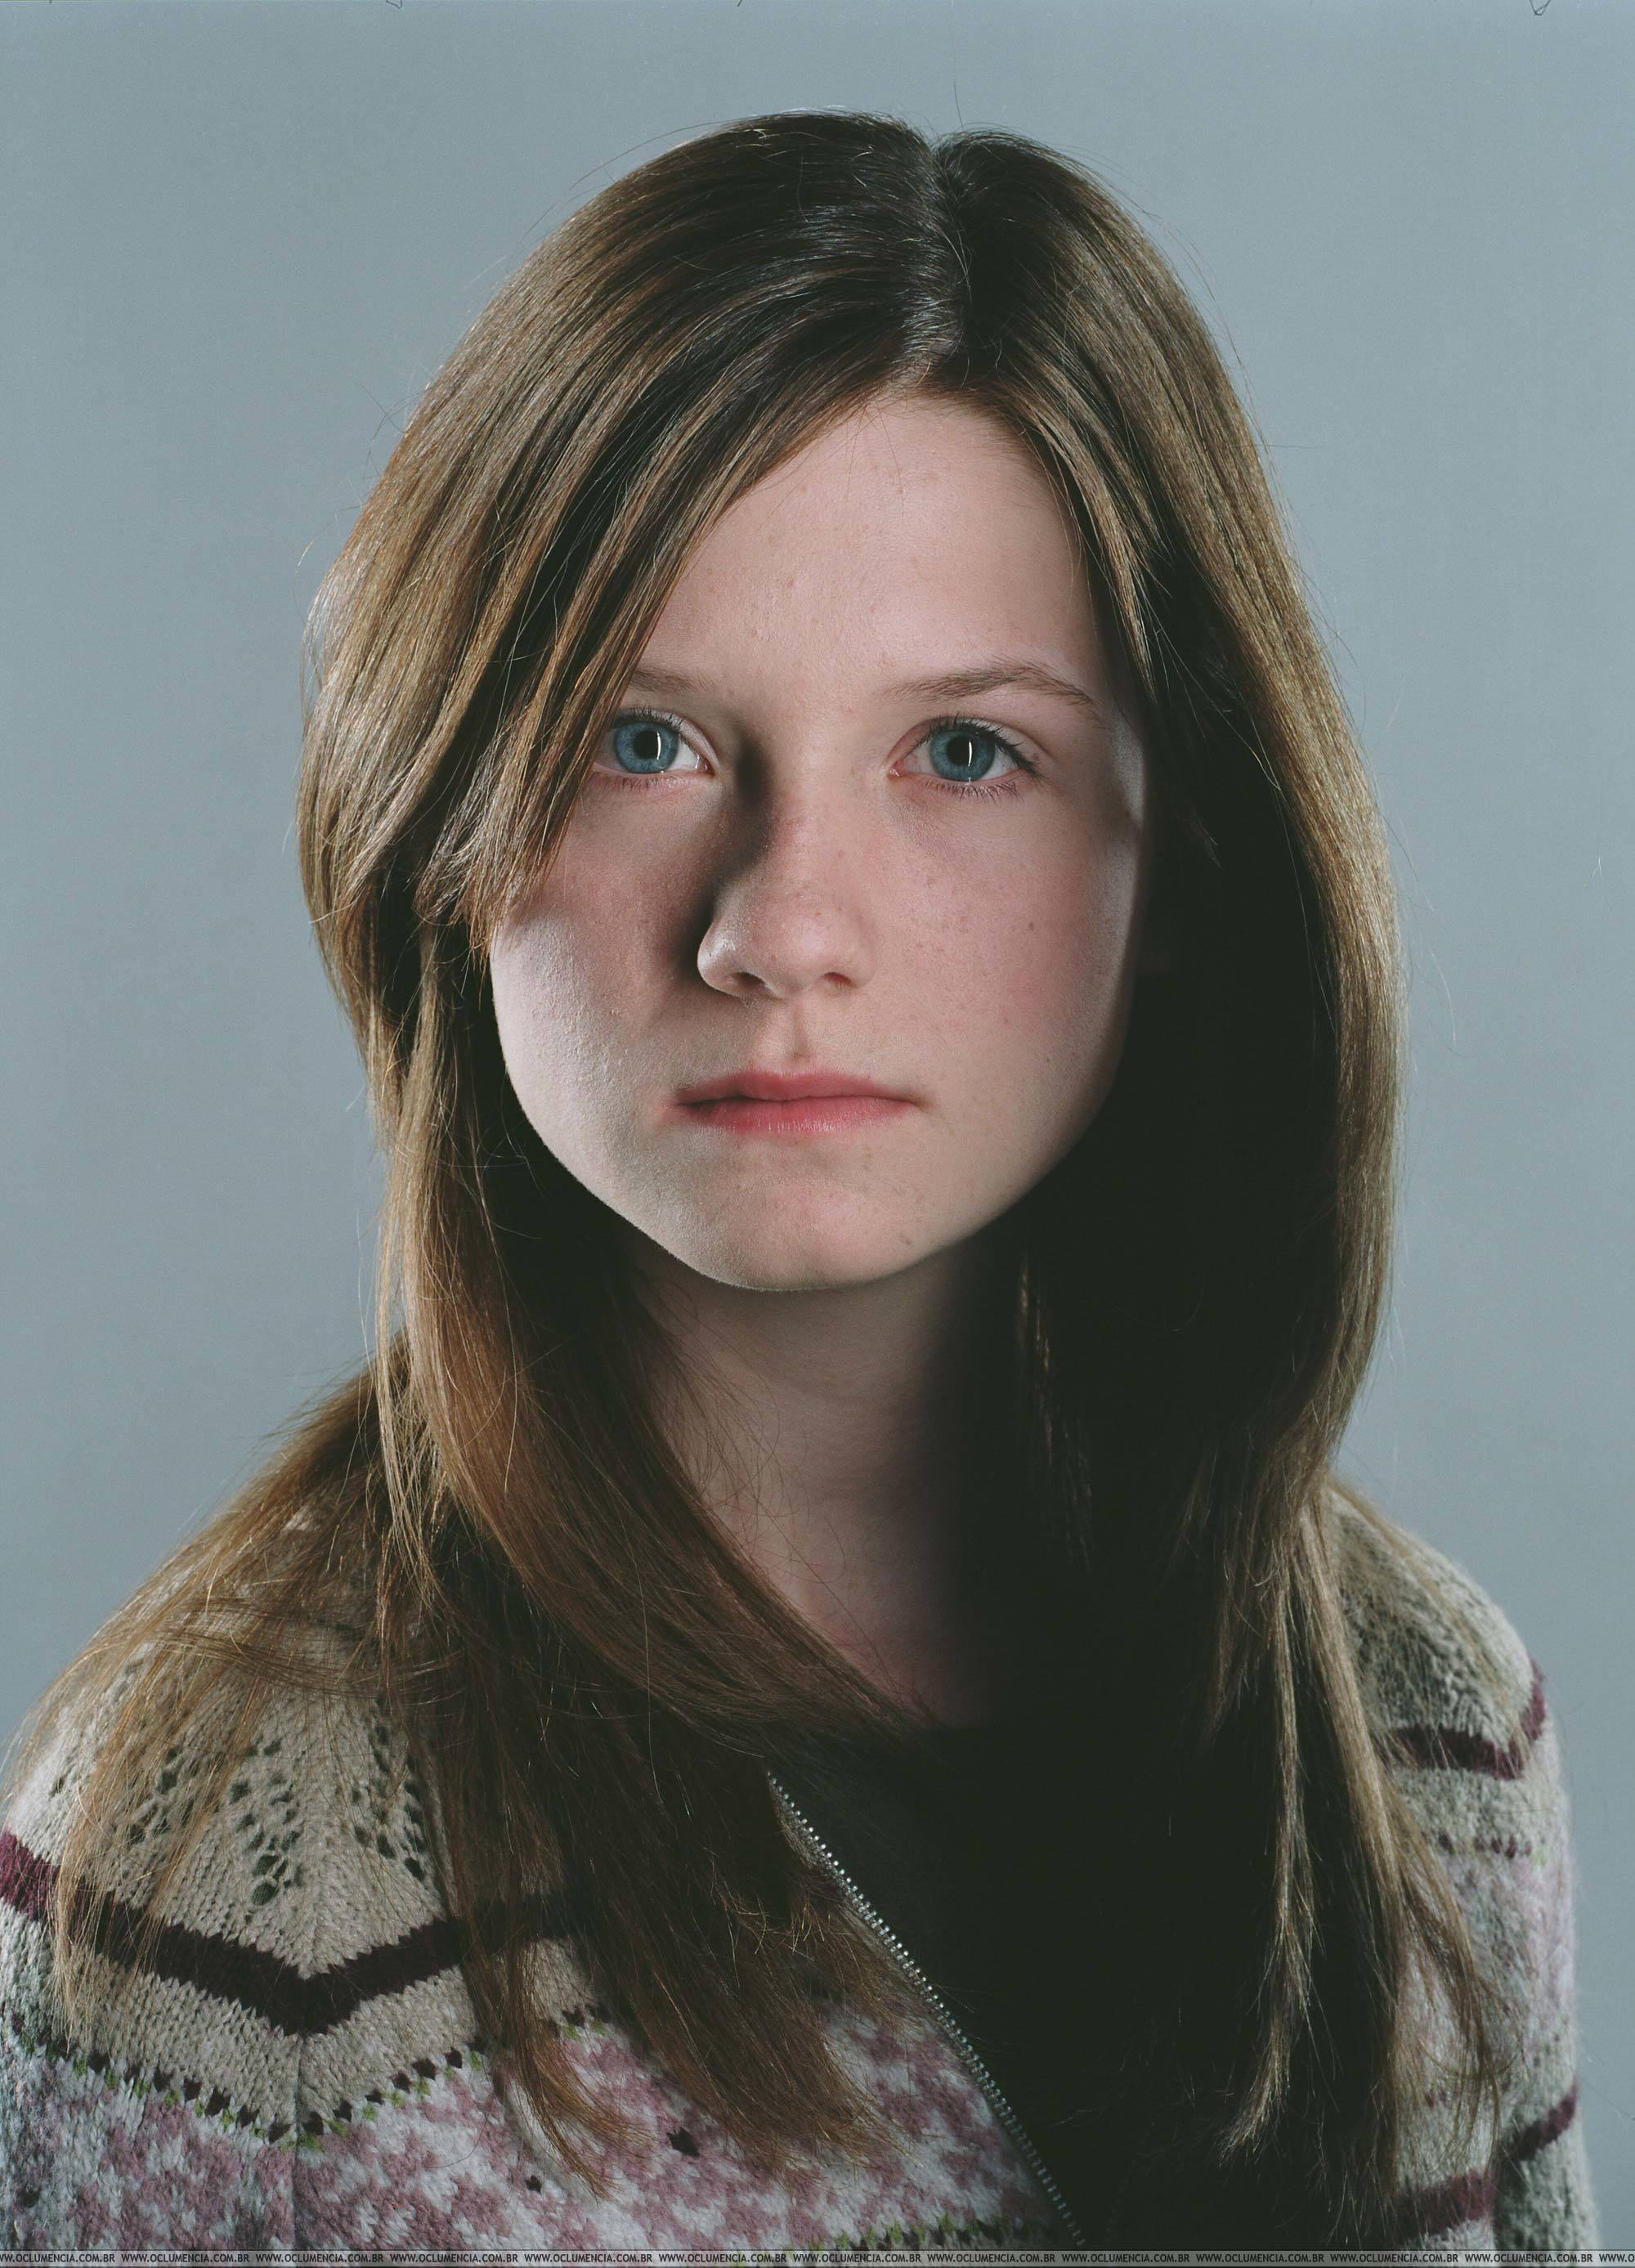 harry potter Bonnie Wright HD Wallpaper